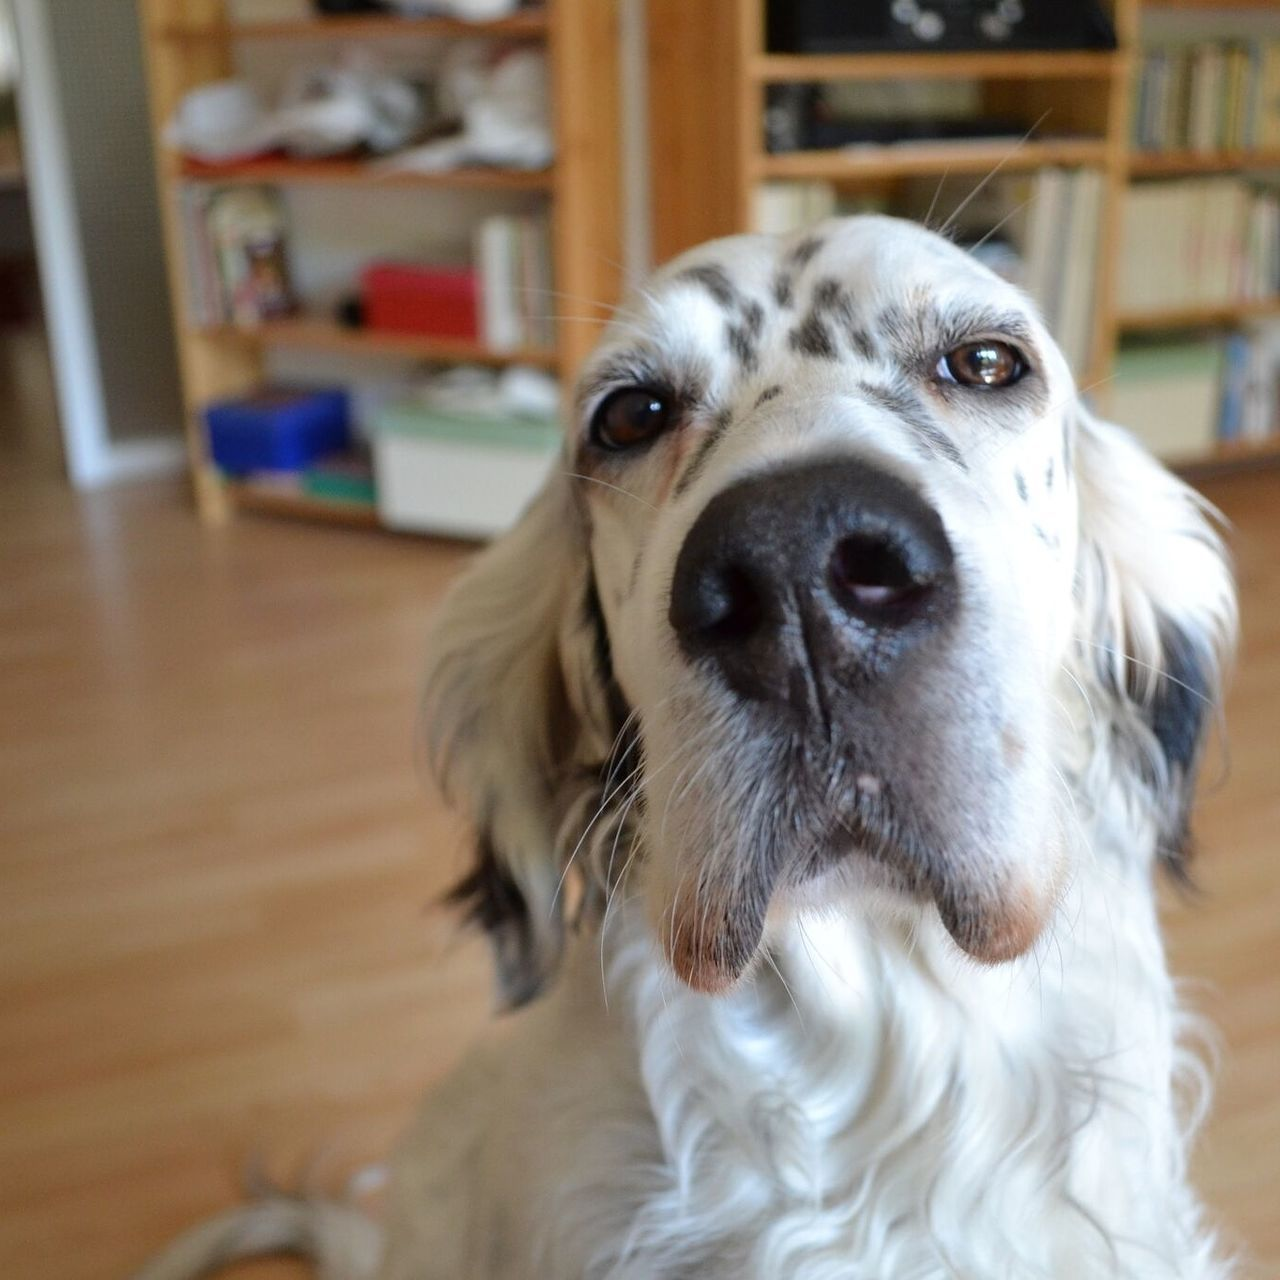 Englischer Setter Animal Themes Day Dog Focus On Foreground Hund Hundefotografie Indoors  Looking At Camera No People Portrait Setter